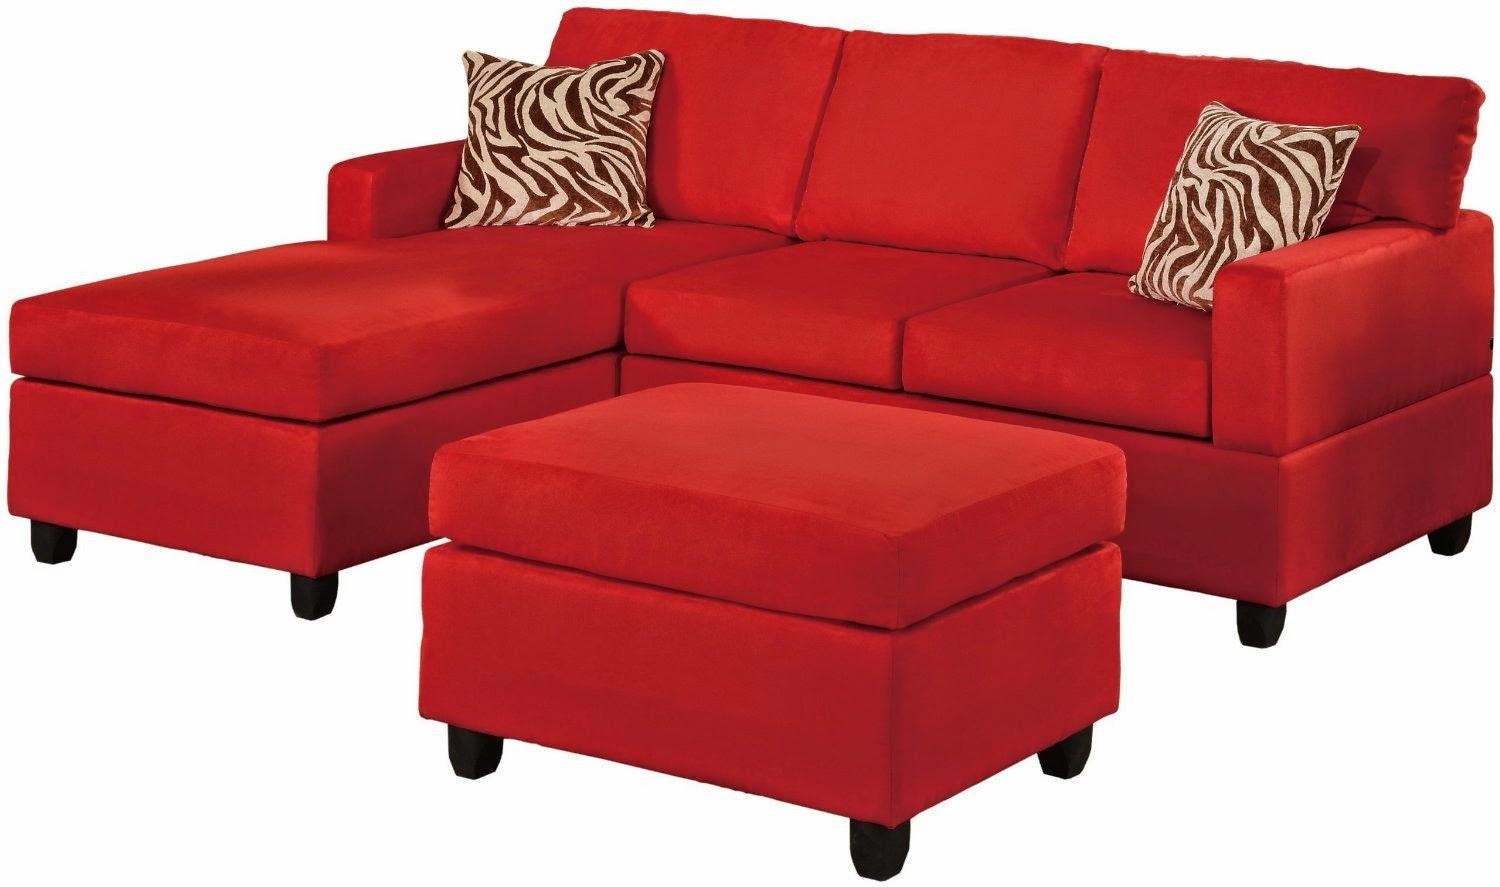 Red Sectional Sofas Cheap | Centerfieldbar Intended For Red Microfiber Sectional Sofas (Image 14 of 21)